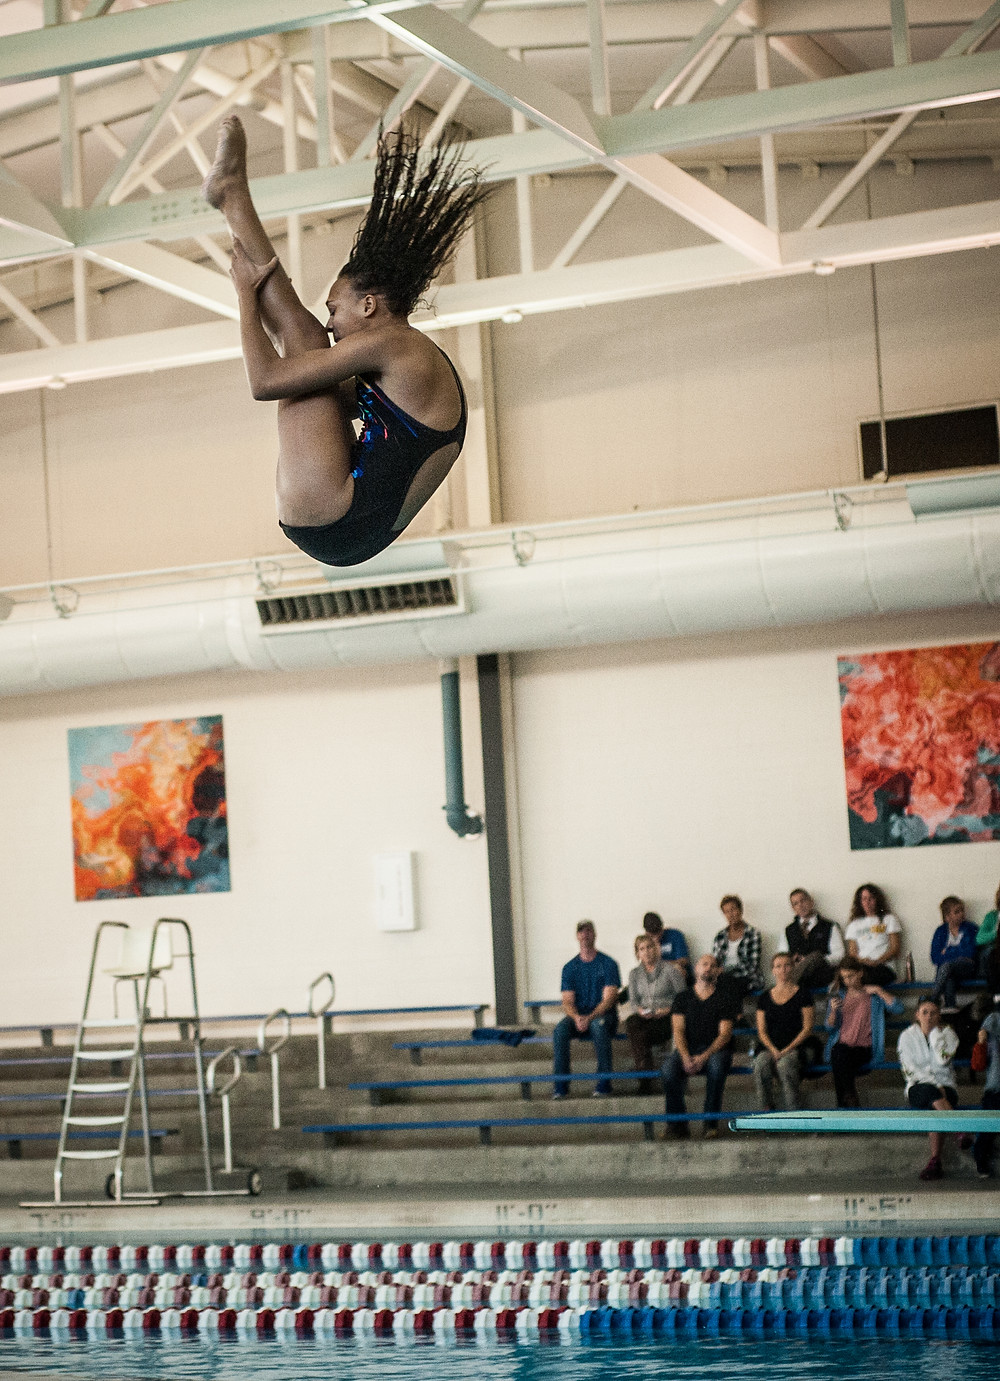 SENIOR CHELSEA CALL performs a dive during a dual meet with Lexington Catholic High School on Wednesday, Nov. 29 at Falling Springs. (Photo by Bill Caine)